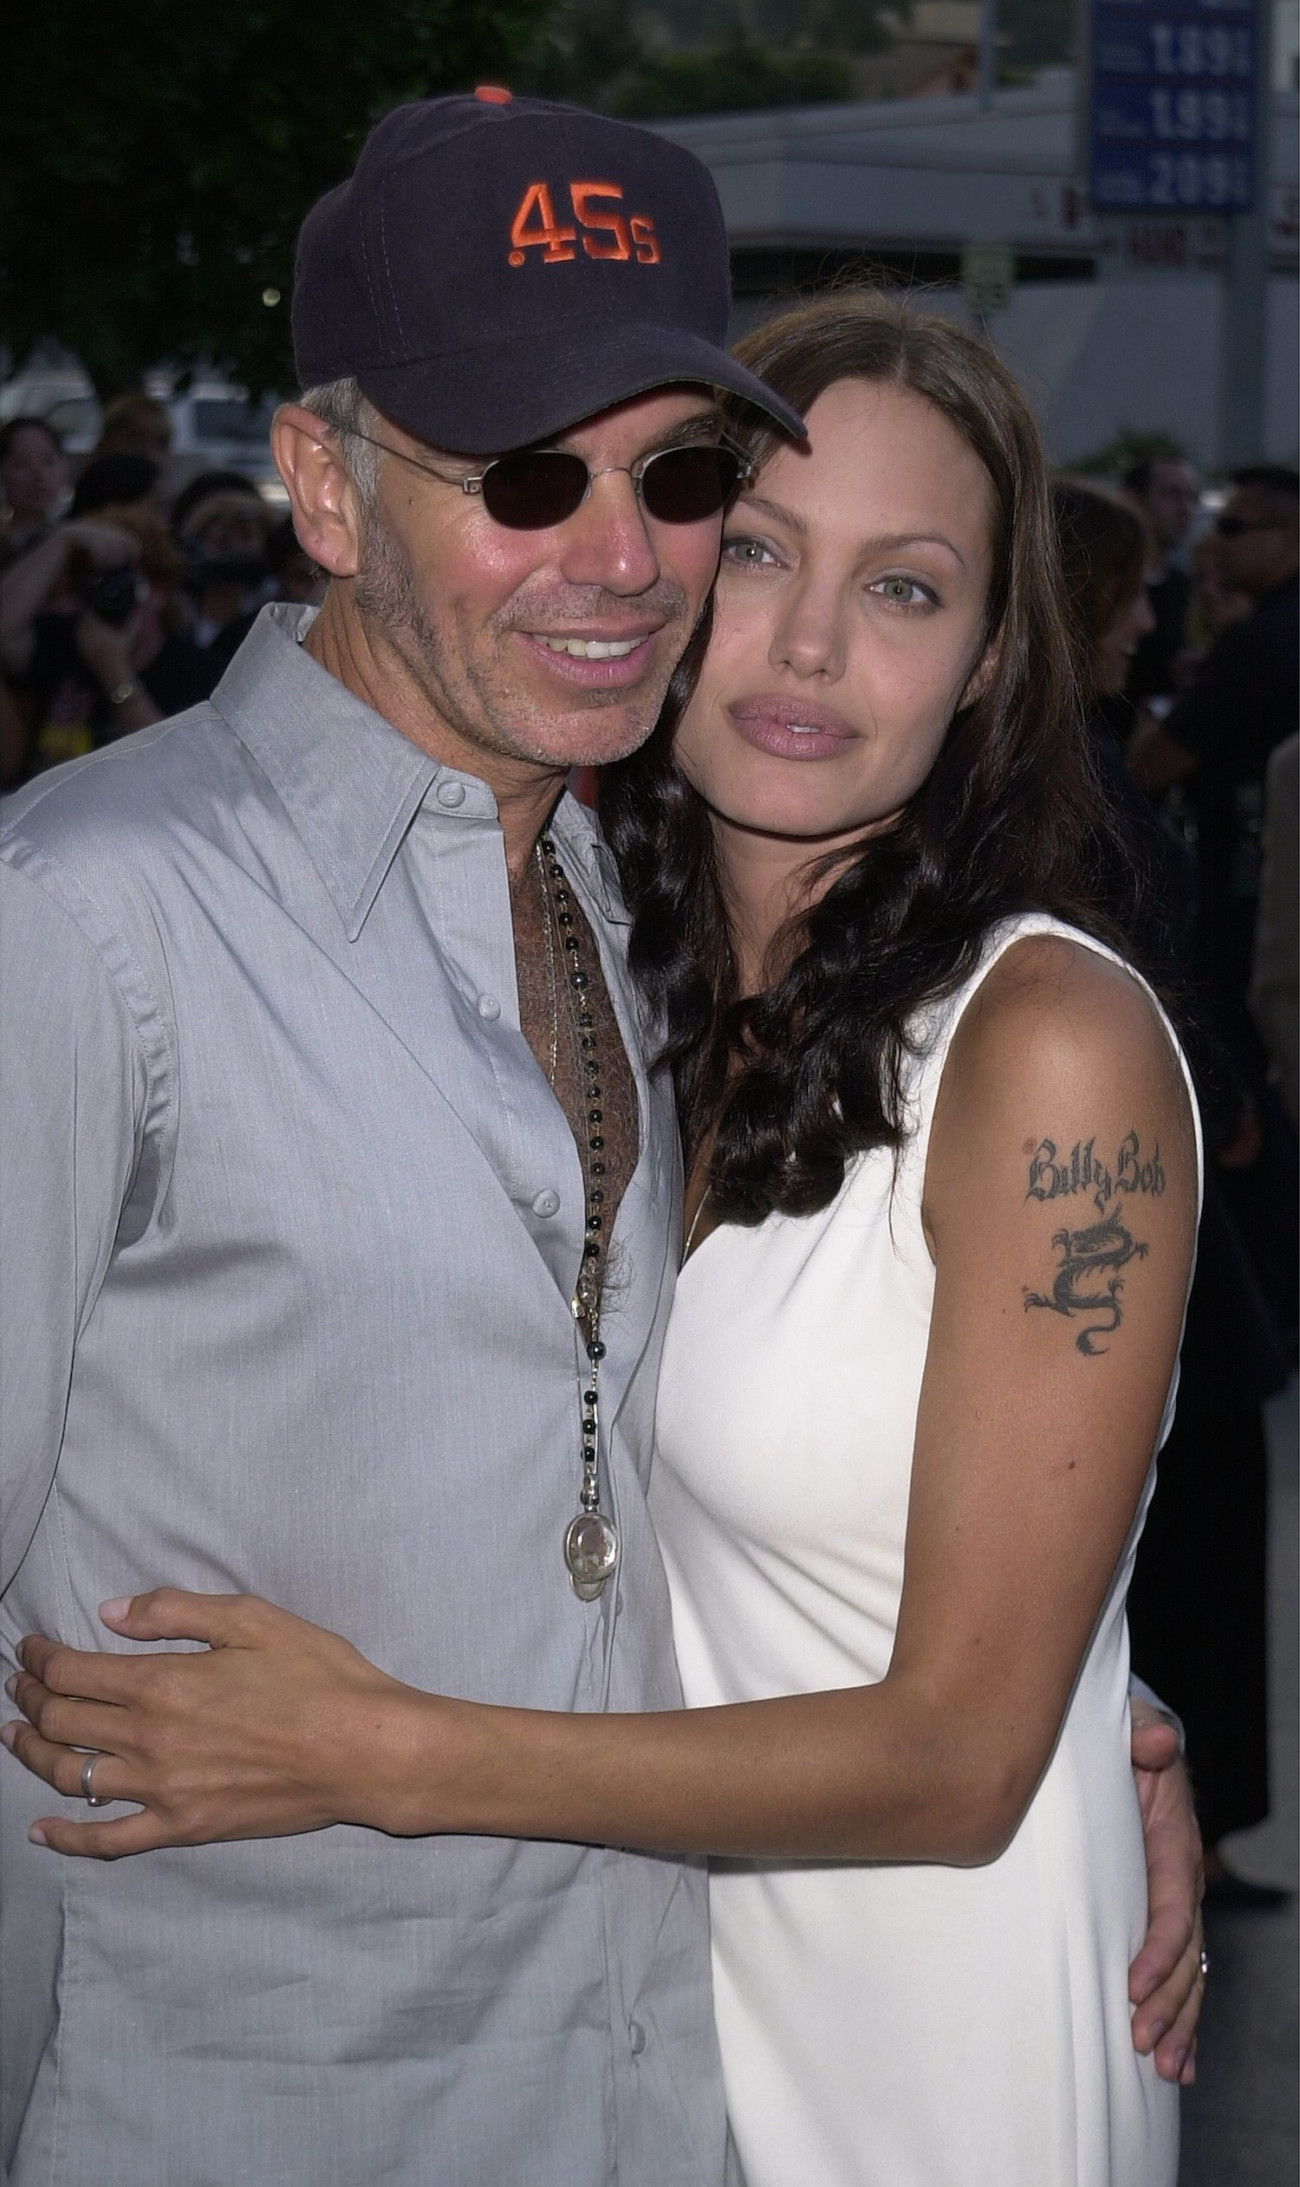 "392621 08: Actress Angelina Jolie and her husband, actor-director Billy Bob Thornton, attend the premiere of the MGM Pictures'' film ""Original Sin"" July 31, 2001 in Hollywood, CA. (Photo by Vince Bucci/Getty Images)"